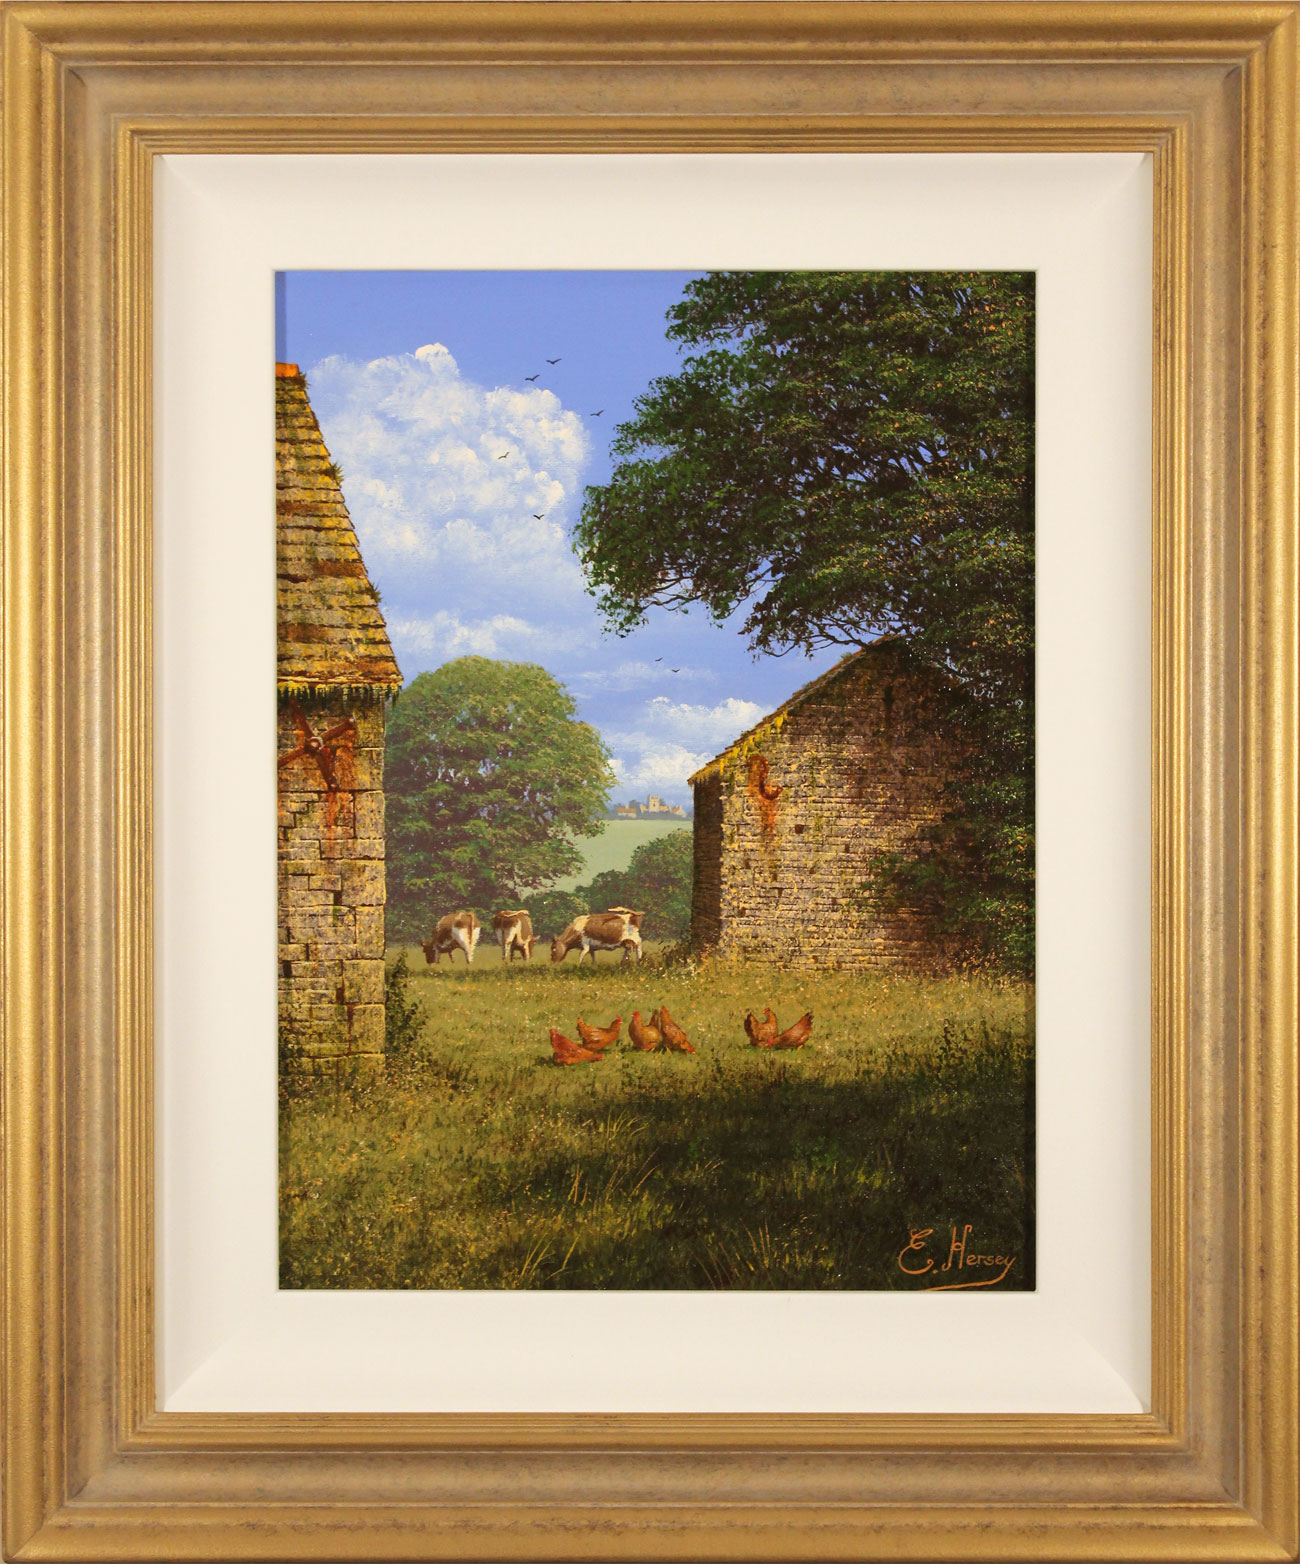 Edward Hersey, Original oil painting on canvas, One Fine Yorkshire Morning. Click to enlarge